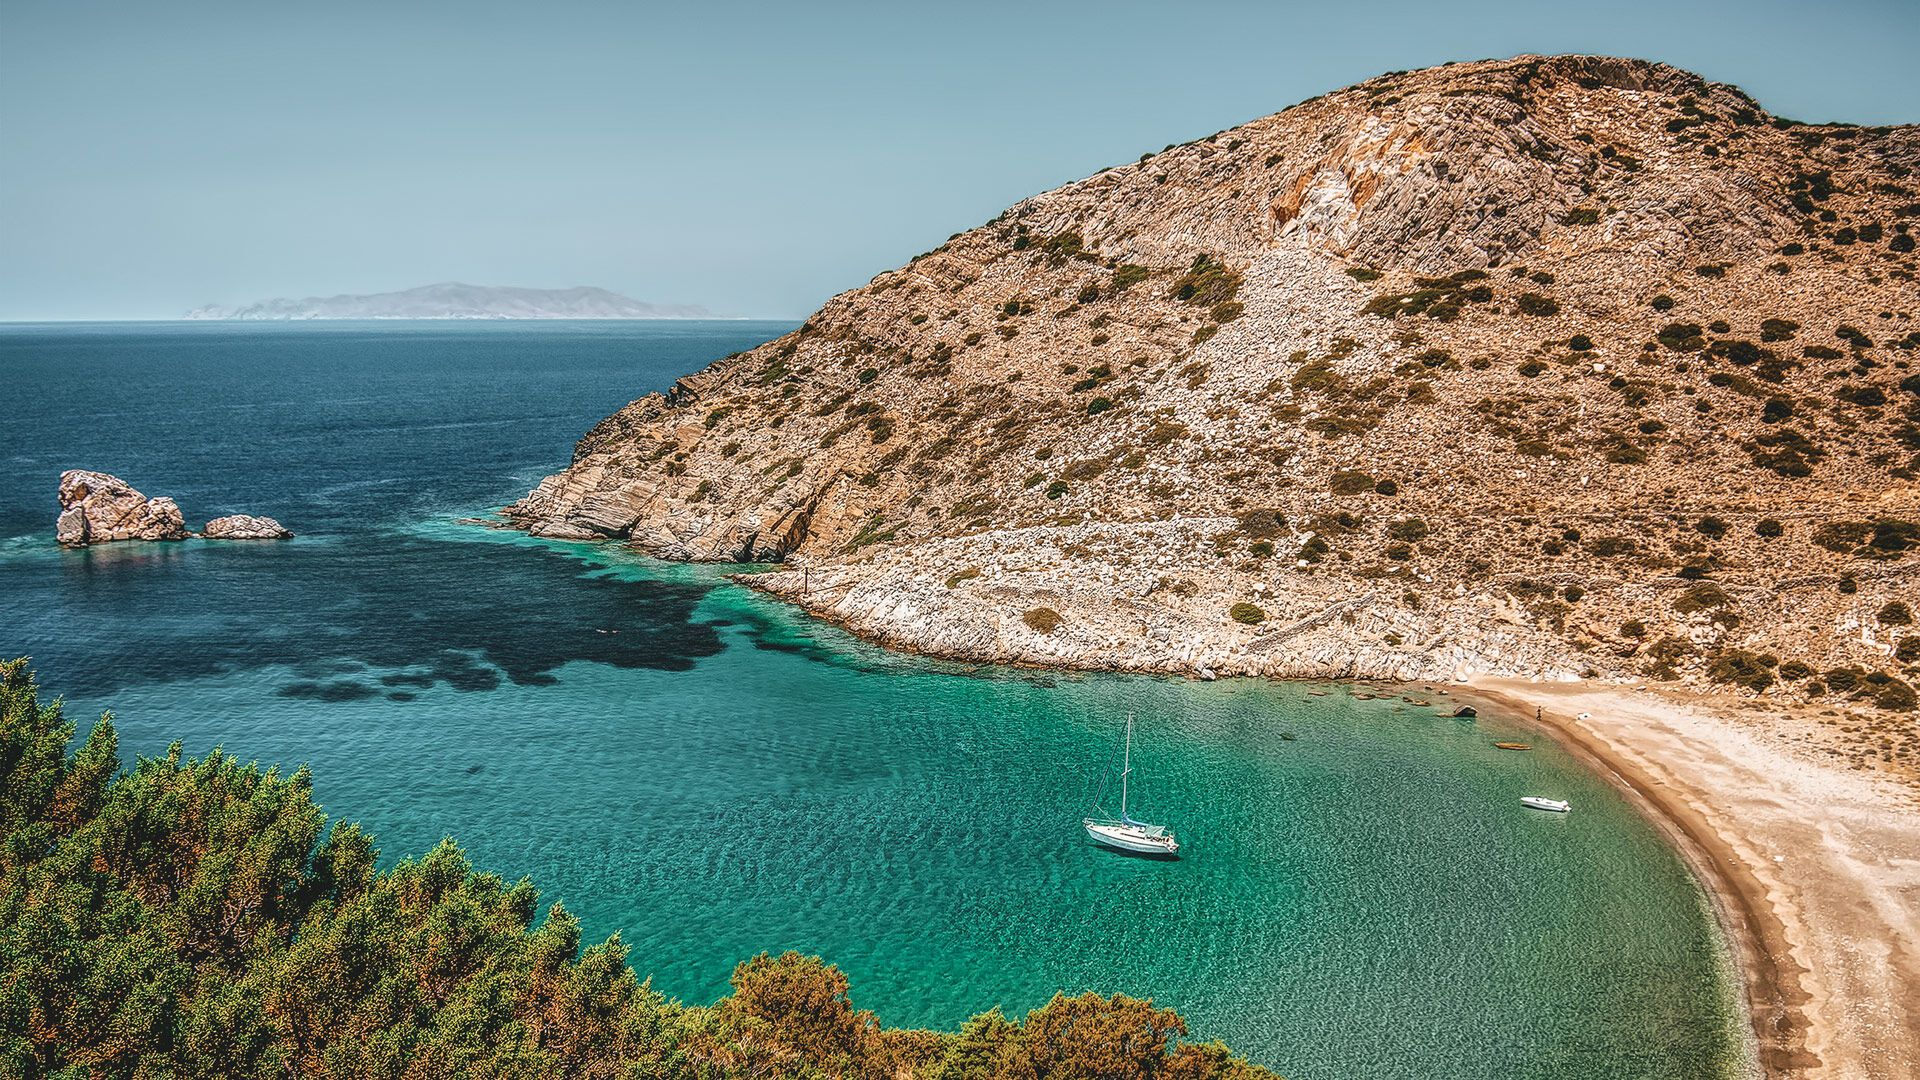 Bay in Syros island